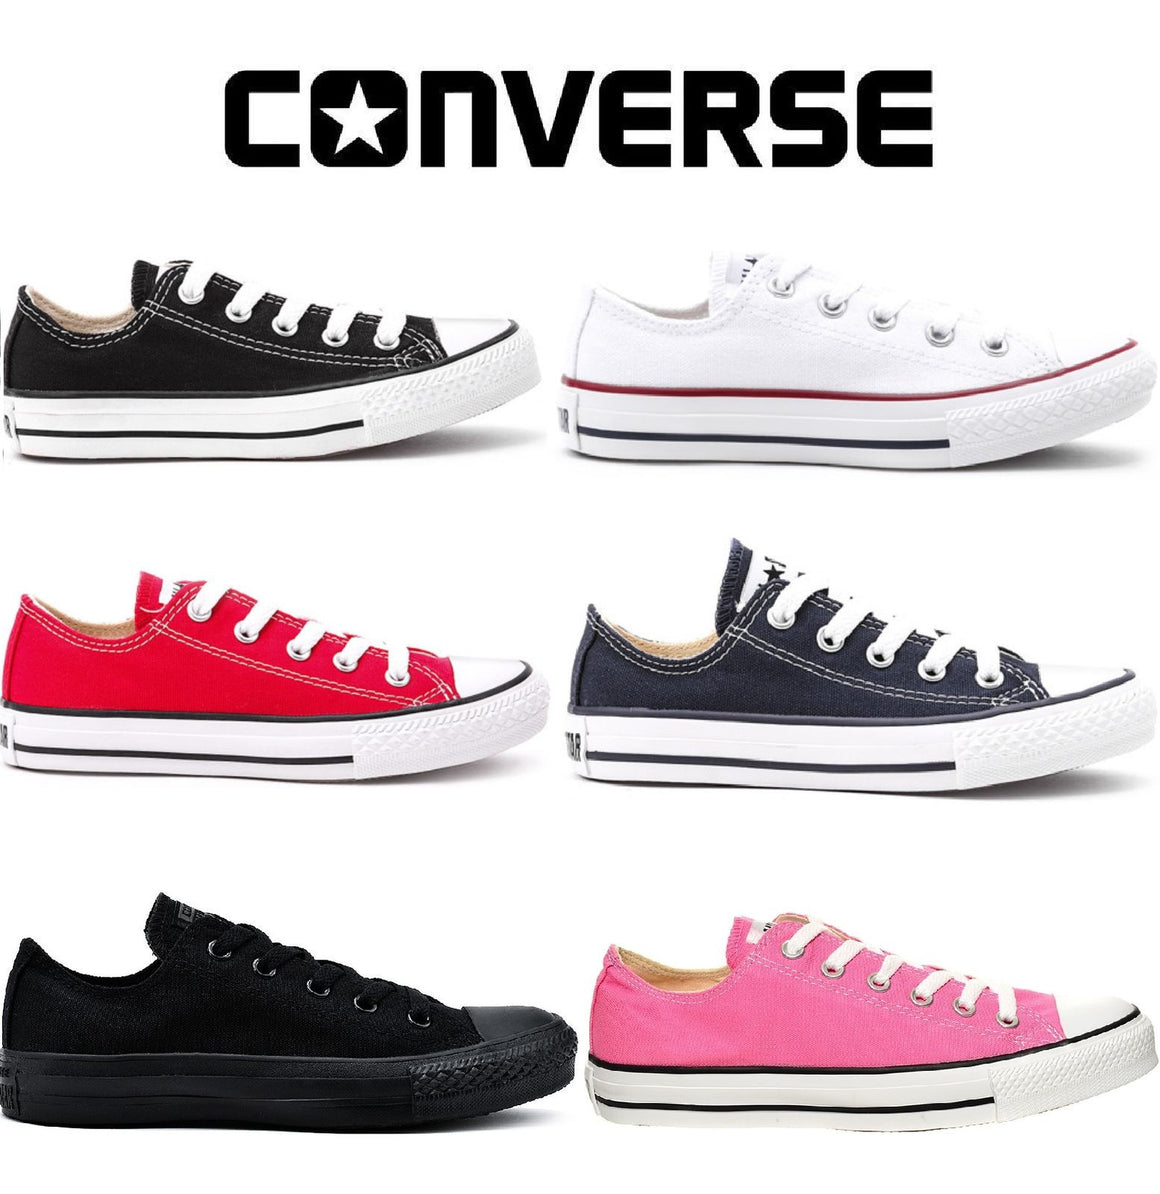 19b38db37e8 Converse Classic Chuck Taylor Low Trainer All Star OX NEW On Sale Free  Delivery UK - Hot Pickz